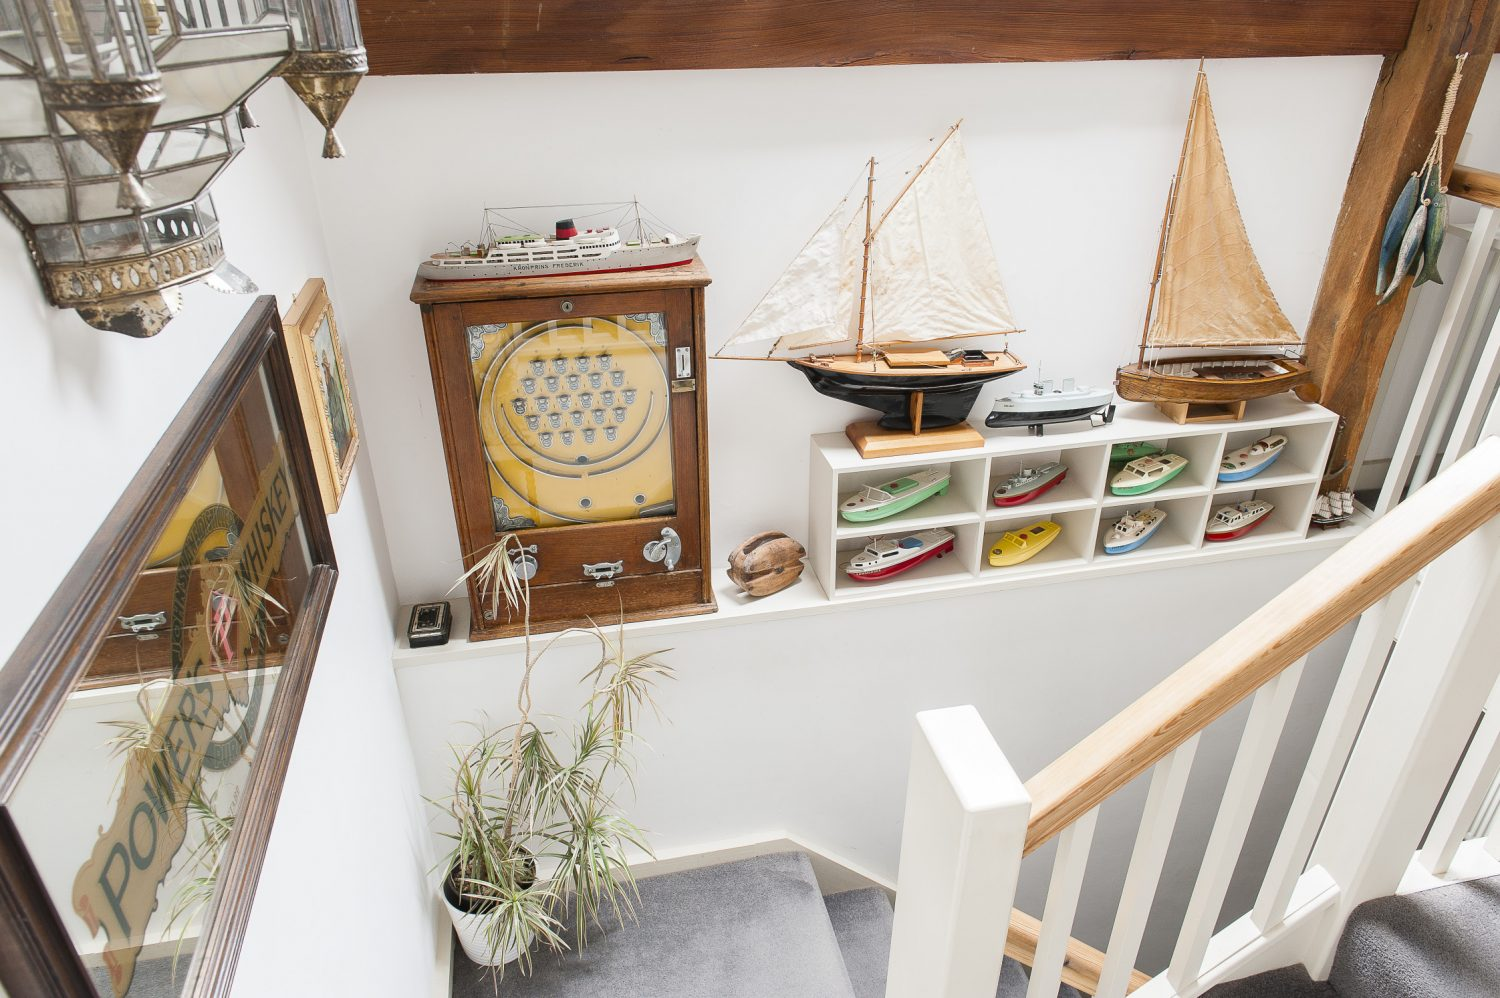 Neatly arranged boats line the ascent to the first floor